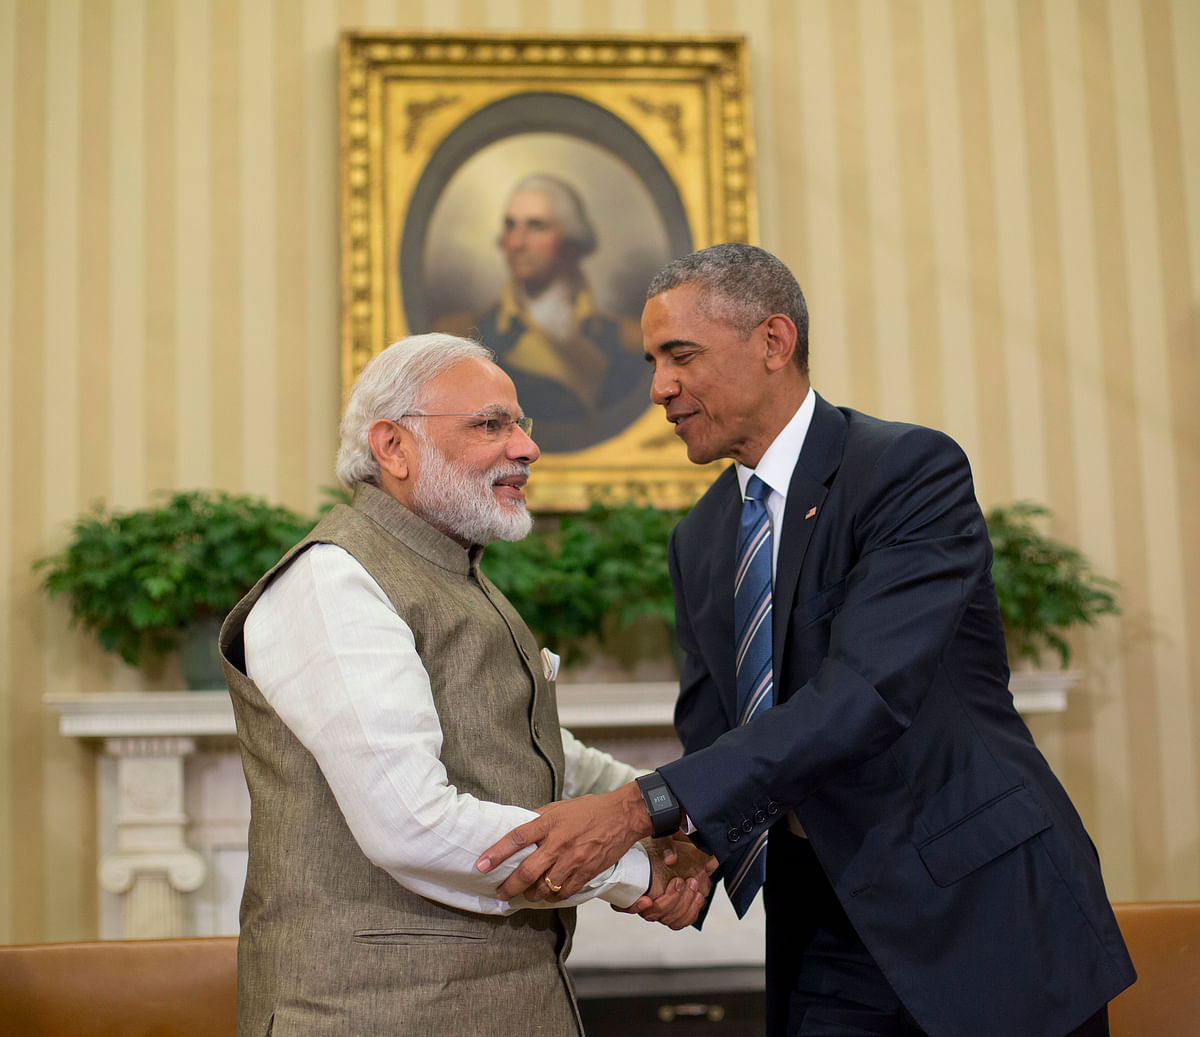 US President Barack Obama and Prime Minister Narendra Modi shake hands before their meeting in the Oval Office of the White House in Washington. (Photo: AP)